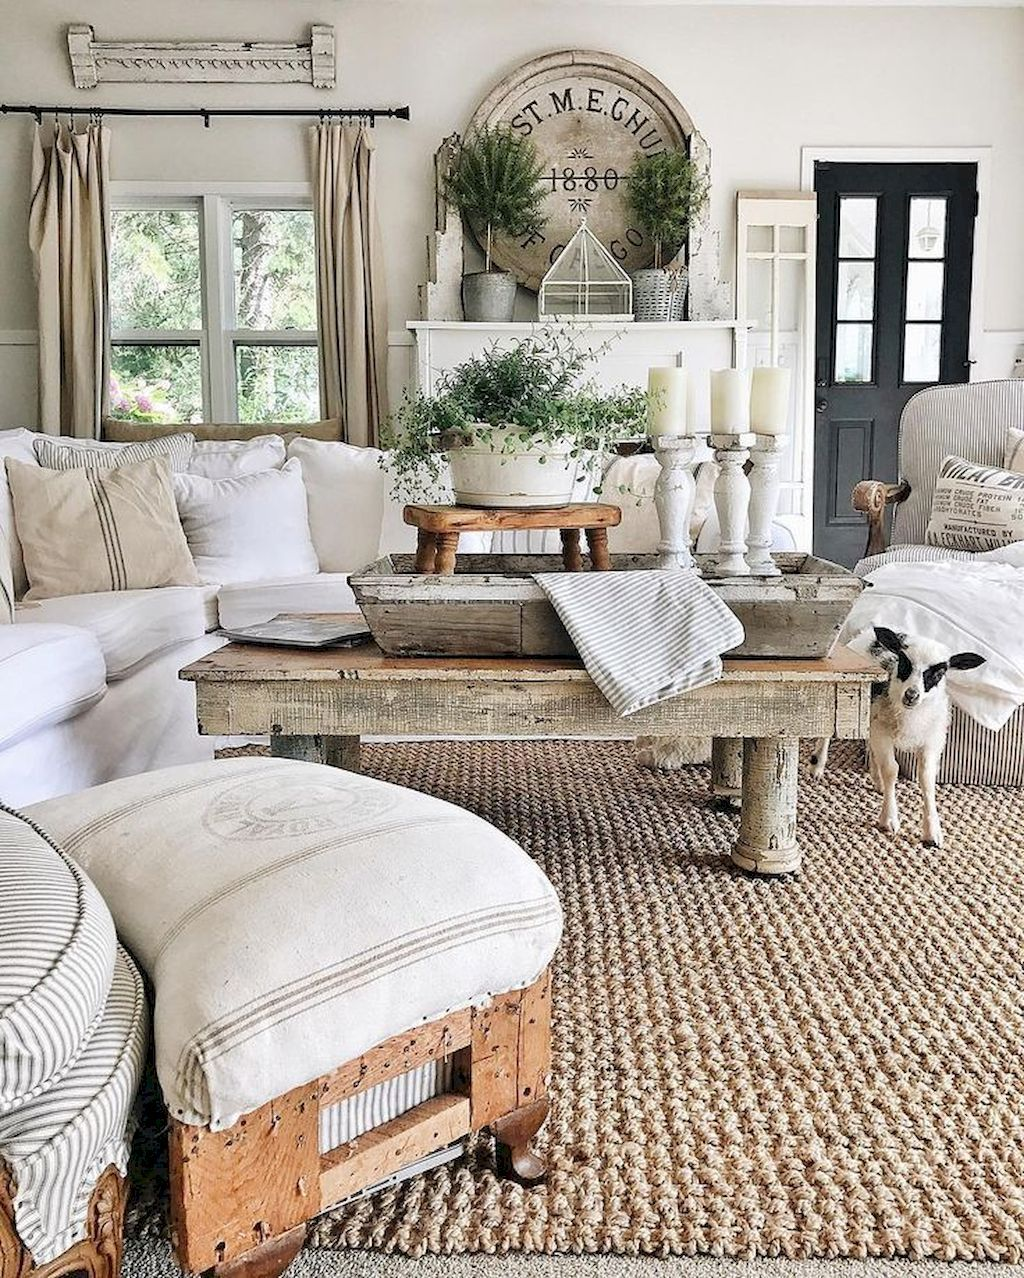 Cool rustic farmhouse living room decor ideas and makeover https livingmarch also awesome country design to improve rh pinterest